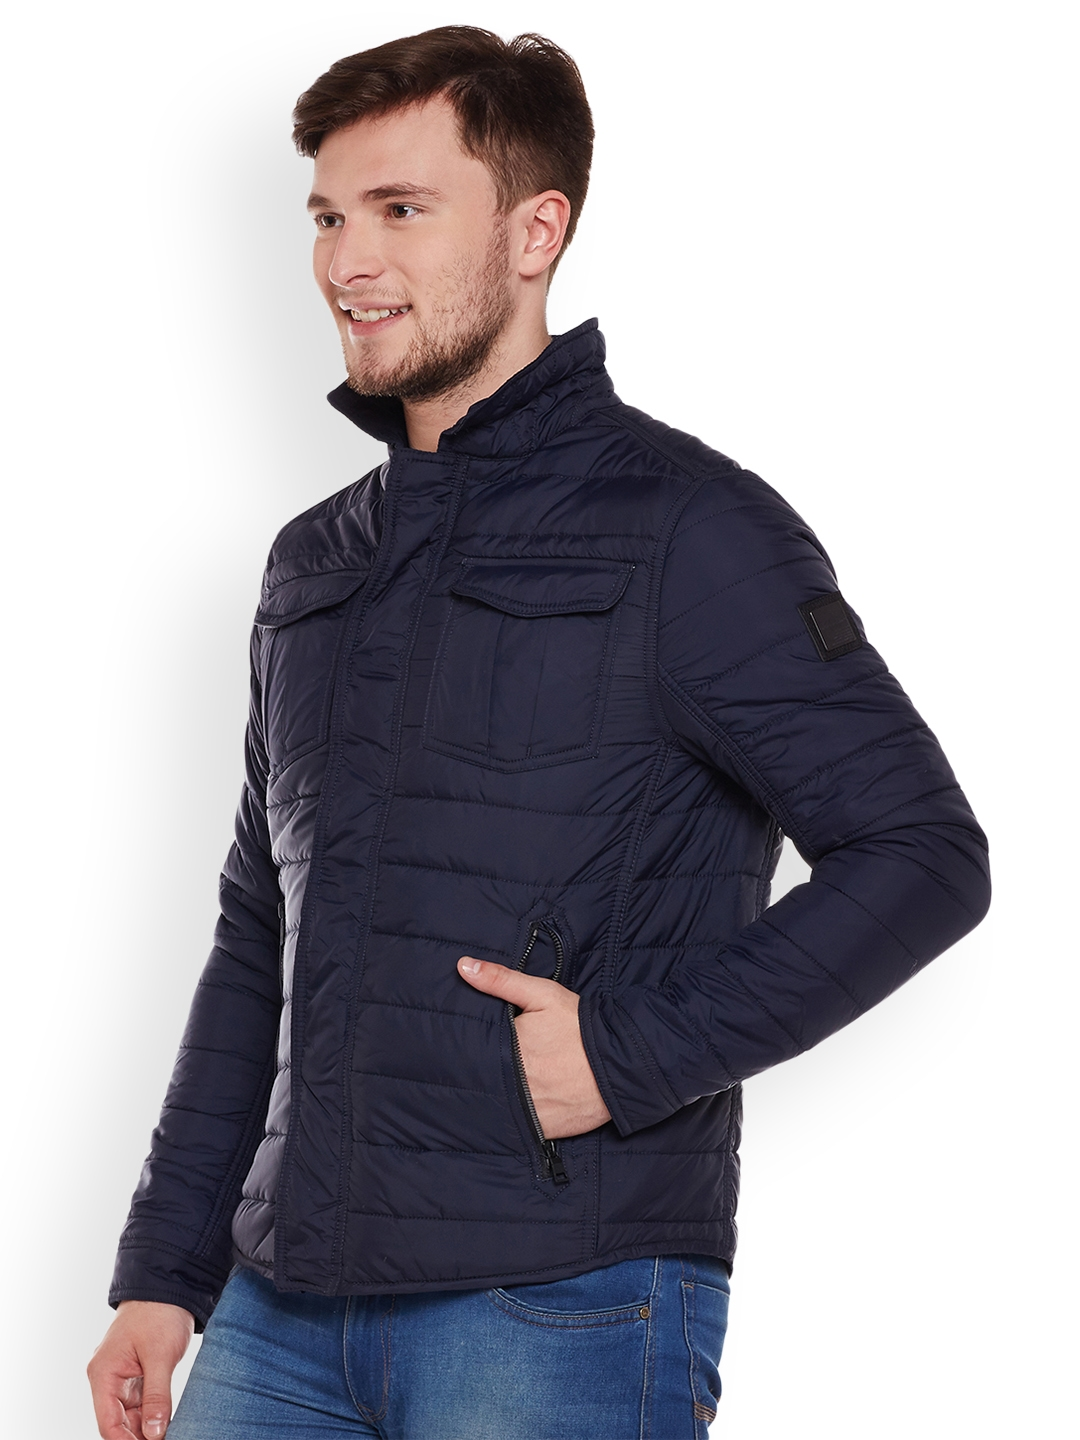 Tom Railor Buy Tom Tailor Men Navy Blue Solid Quilted Jacket Jackets For